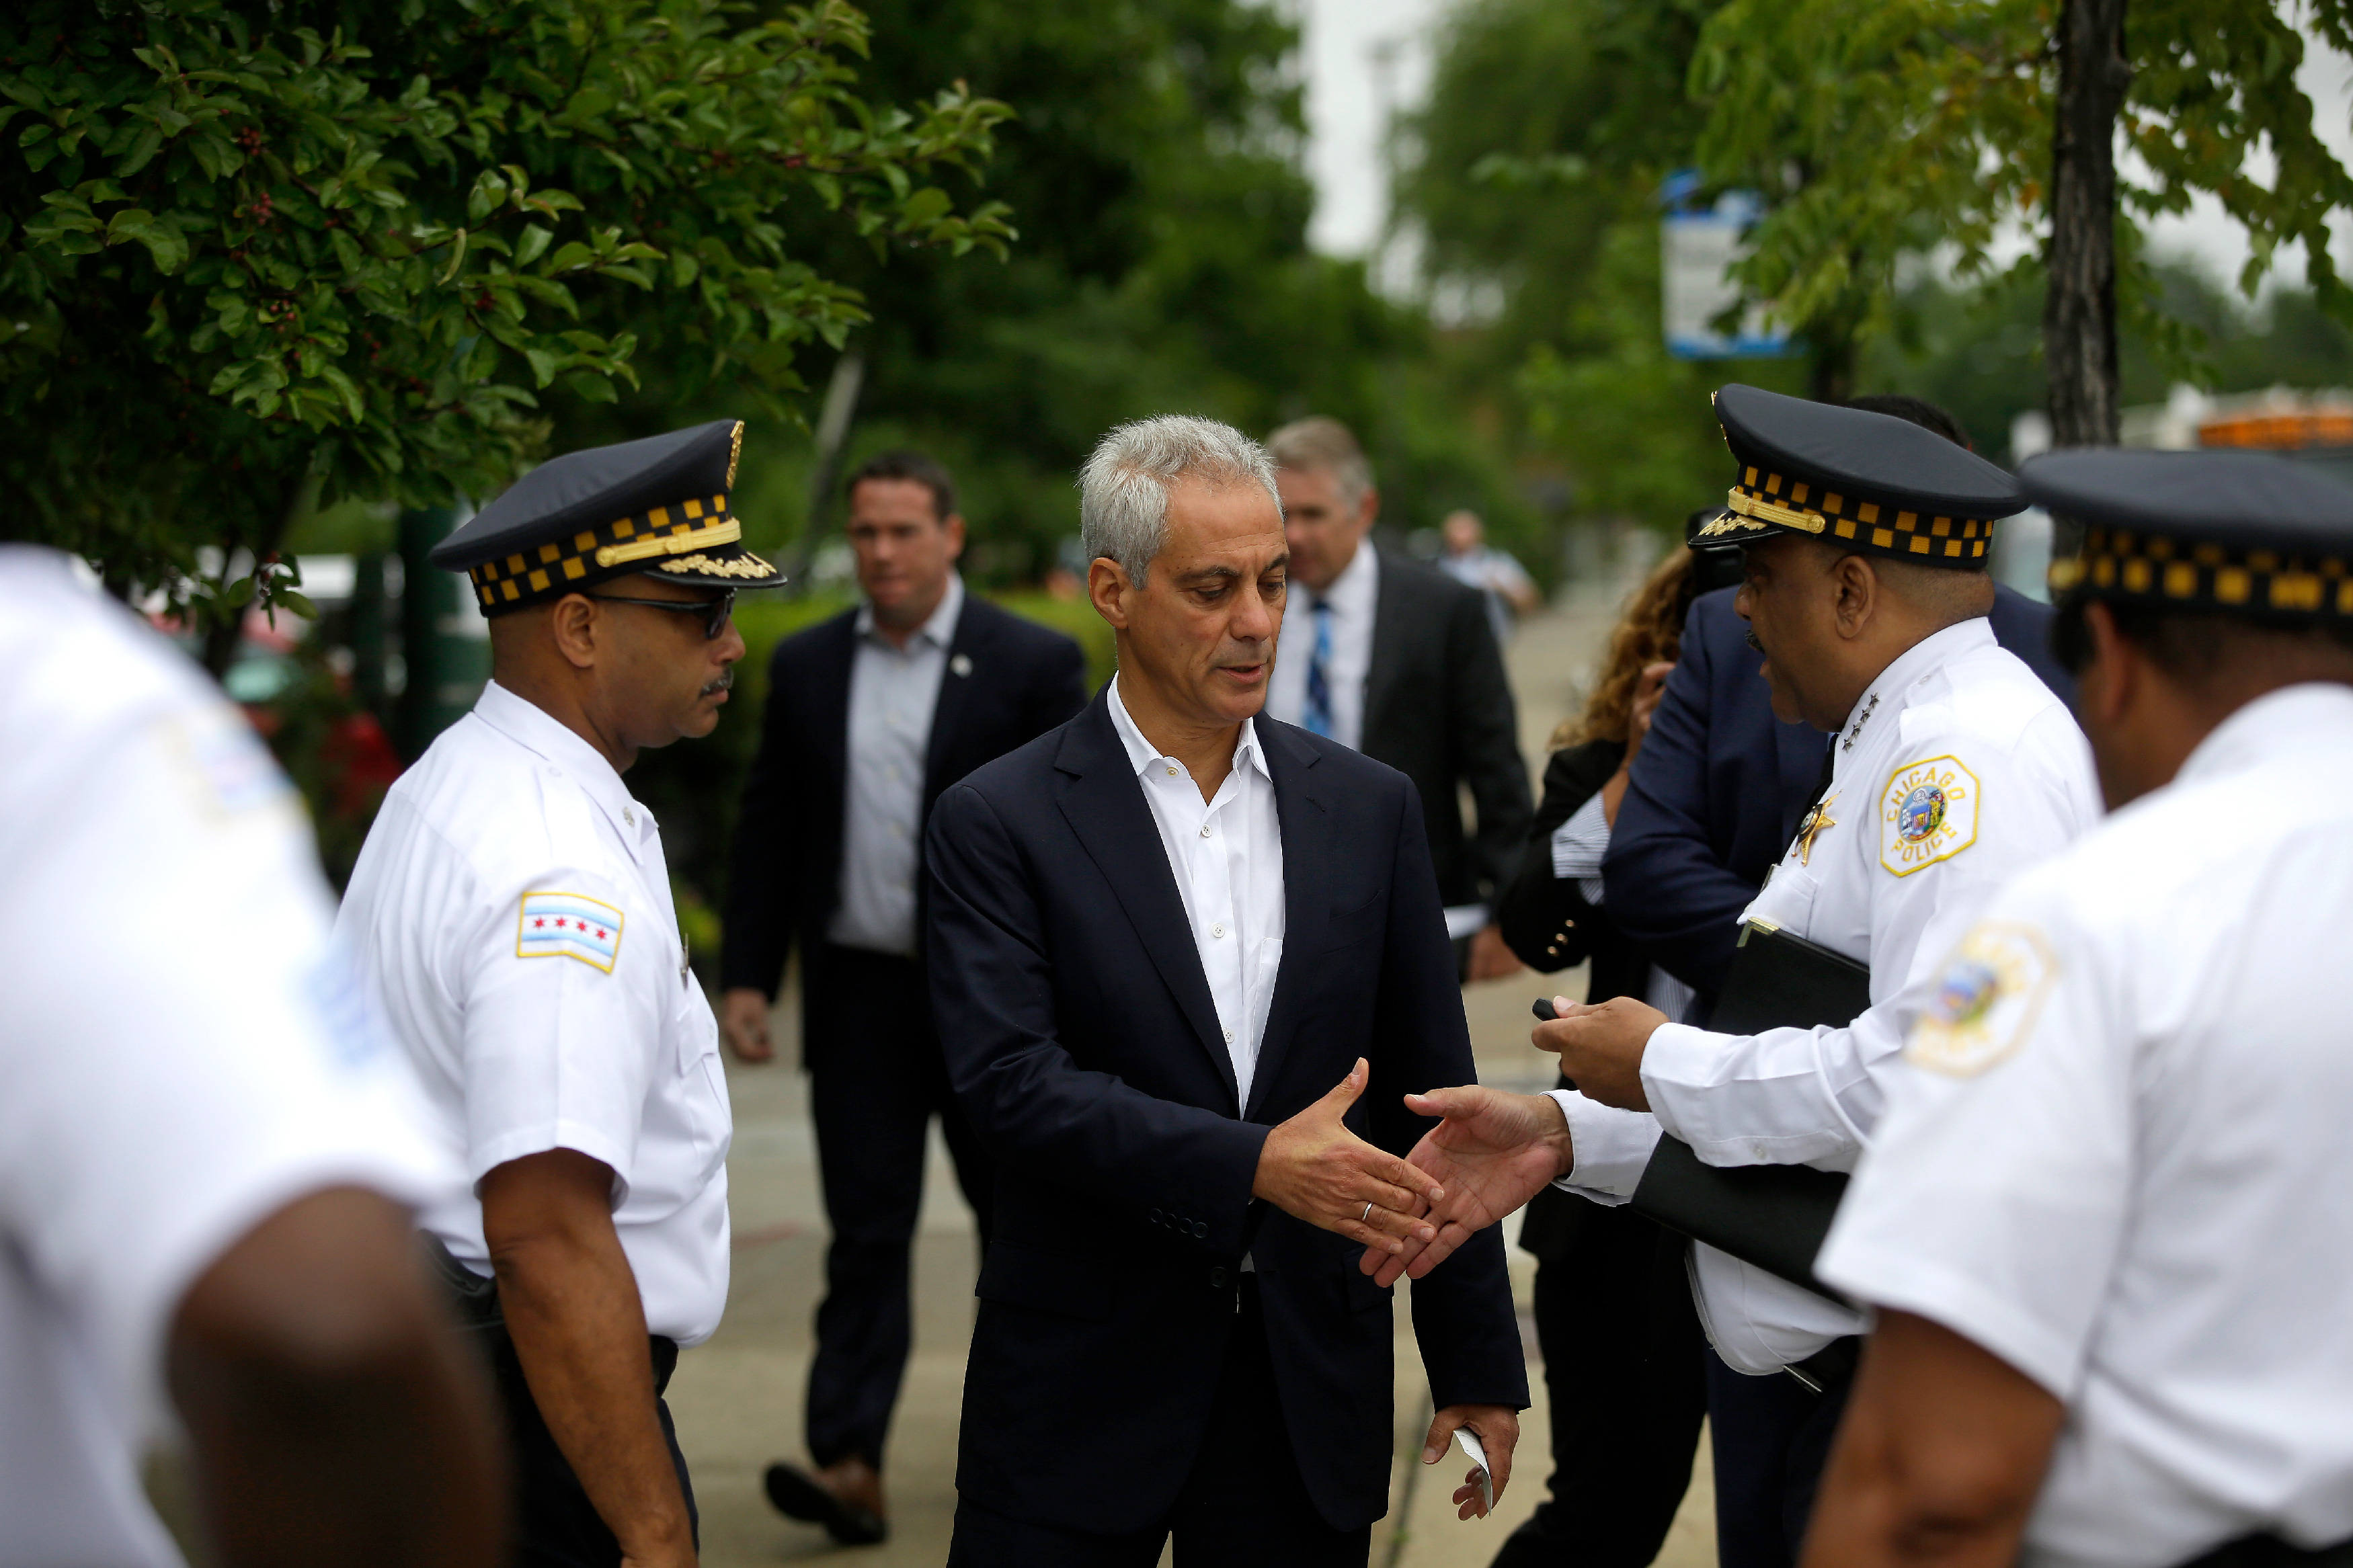 Chicago Mayor Rahm Emanuel greets Chicago Police Superintendent Eddie Johnson before they spoke at a news conference to address reporters about Chicago's weekend of gun violence, Monday, August 6, 2018 in Chicago, Illinois. Chicago experienced one of it's most violent weekends of the year, after more then 70 people were shot, with 12 fatalities. (Photo by Joshua Lott/Getty Images)